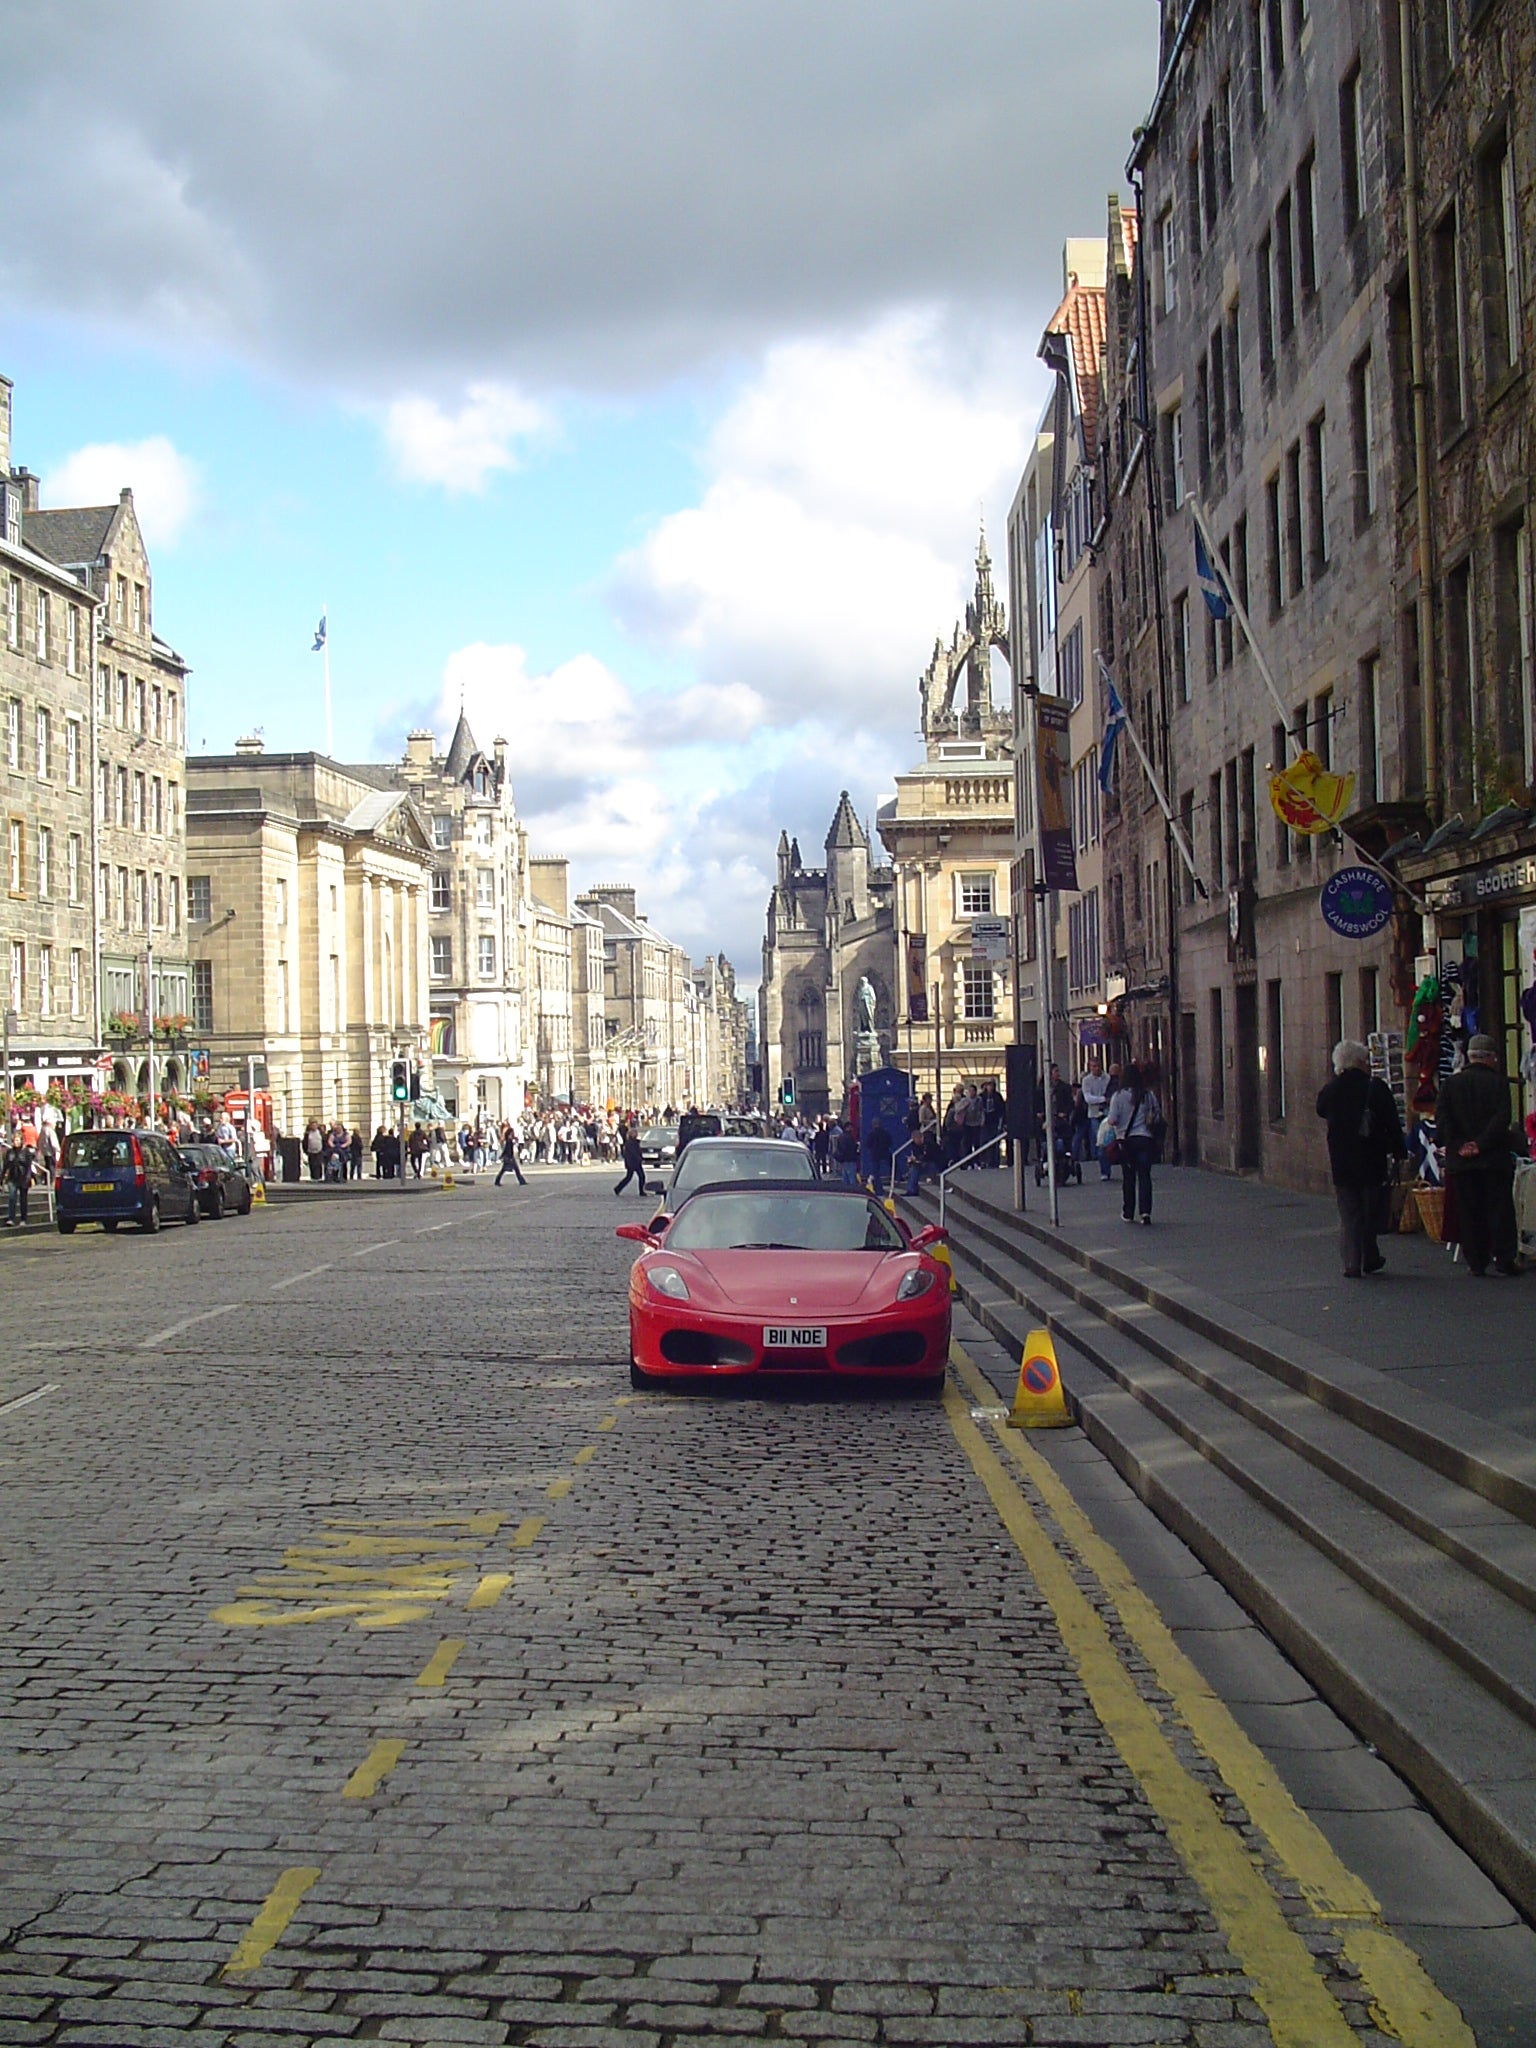 Amarillo en Royal Mile